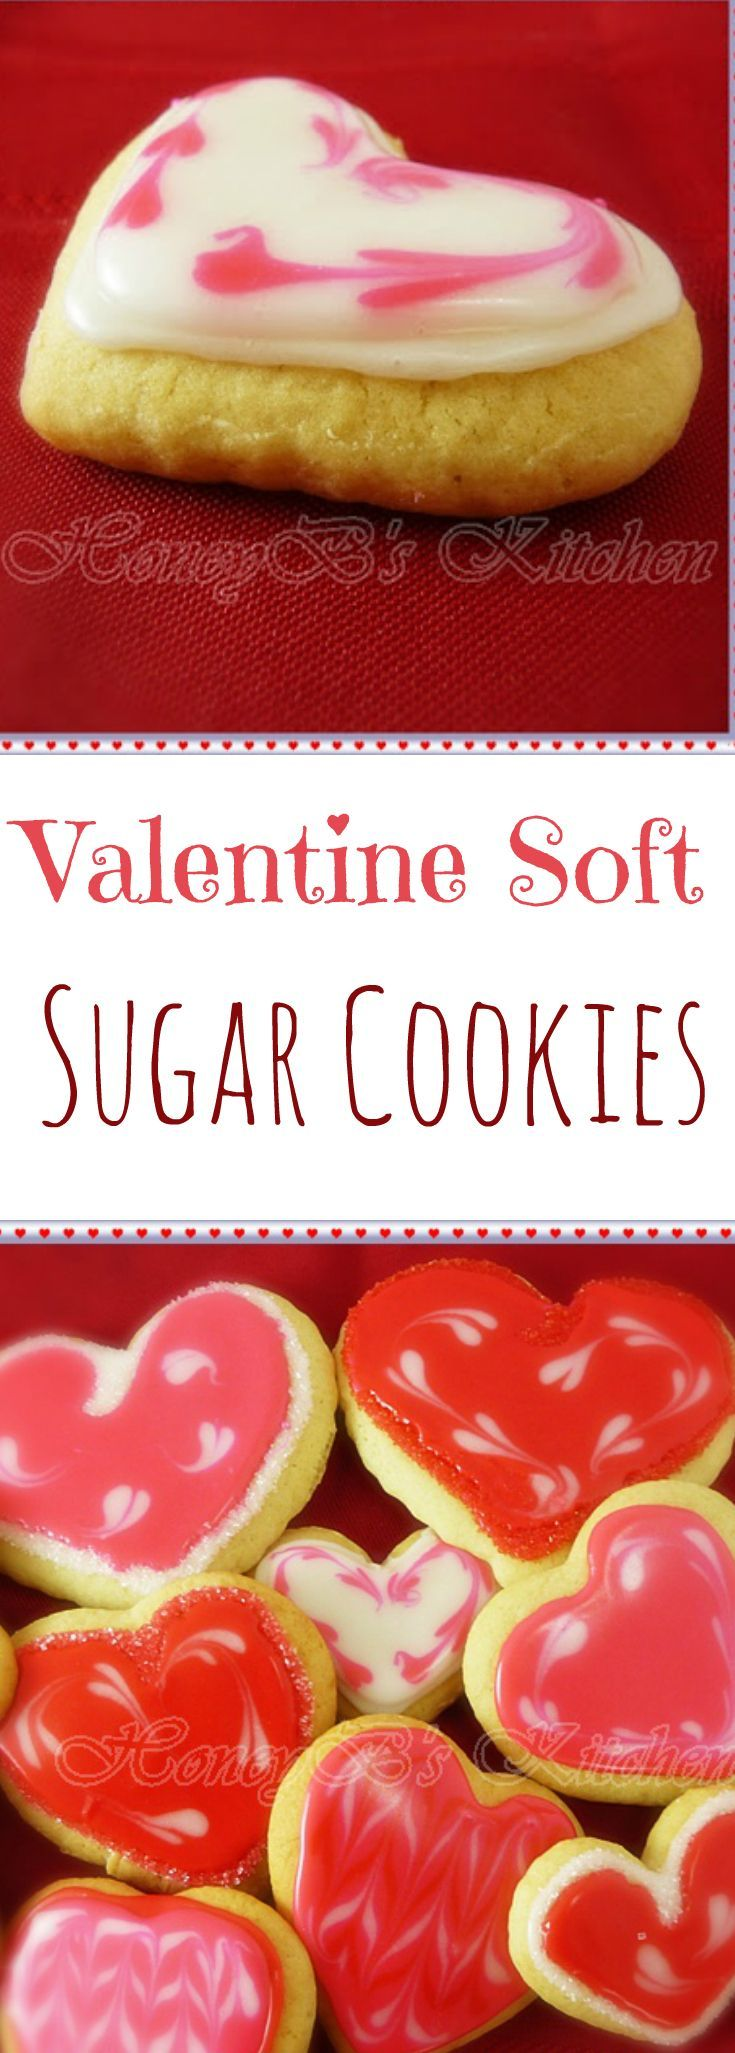 Valentine Soft Sugar Cookies - big soft delicious cookies cut into heart shapes and glazed with decorating icing. Show someone you love them and make this recipe for your Valentine!